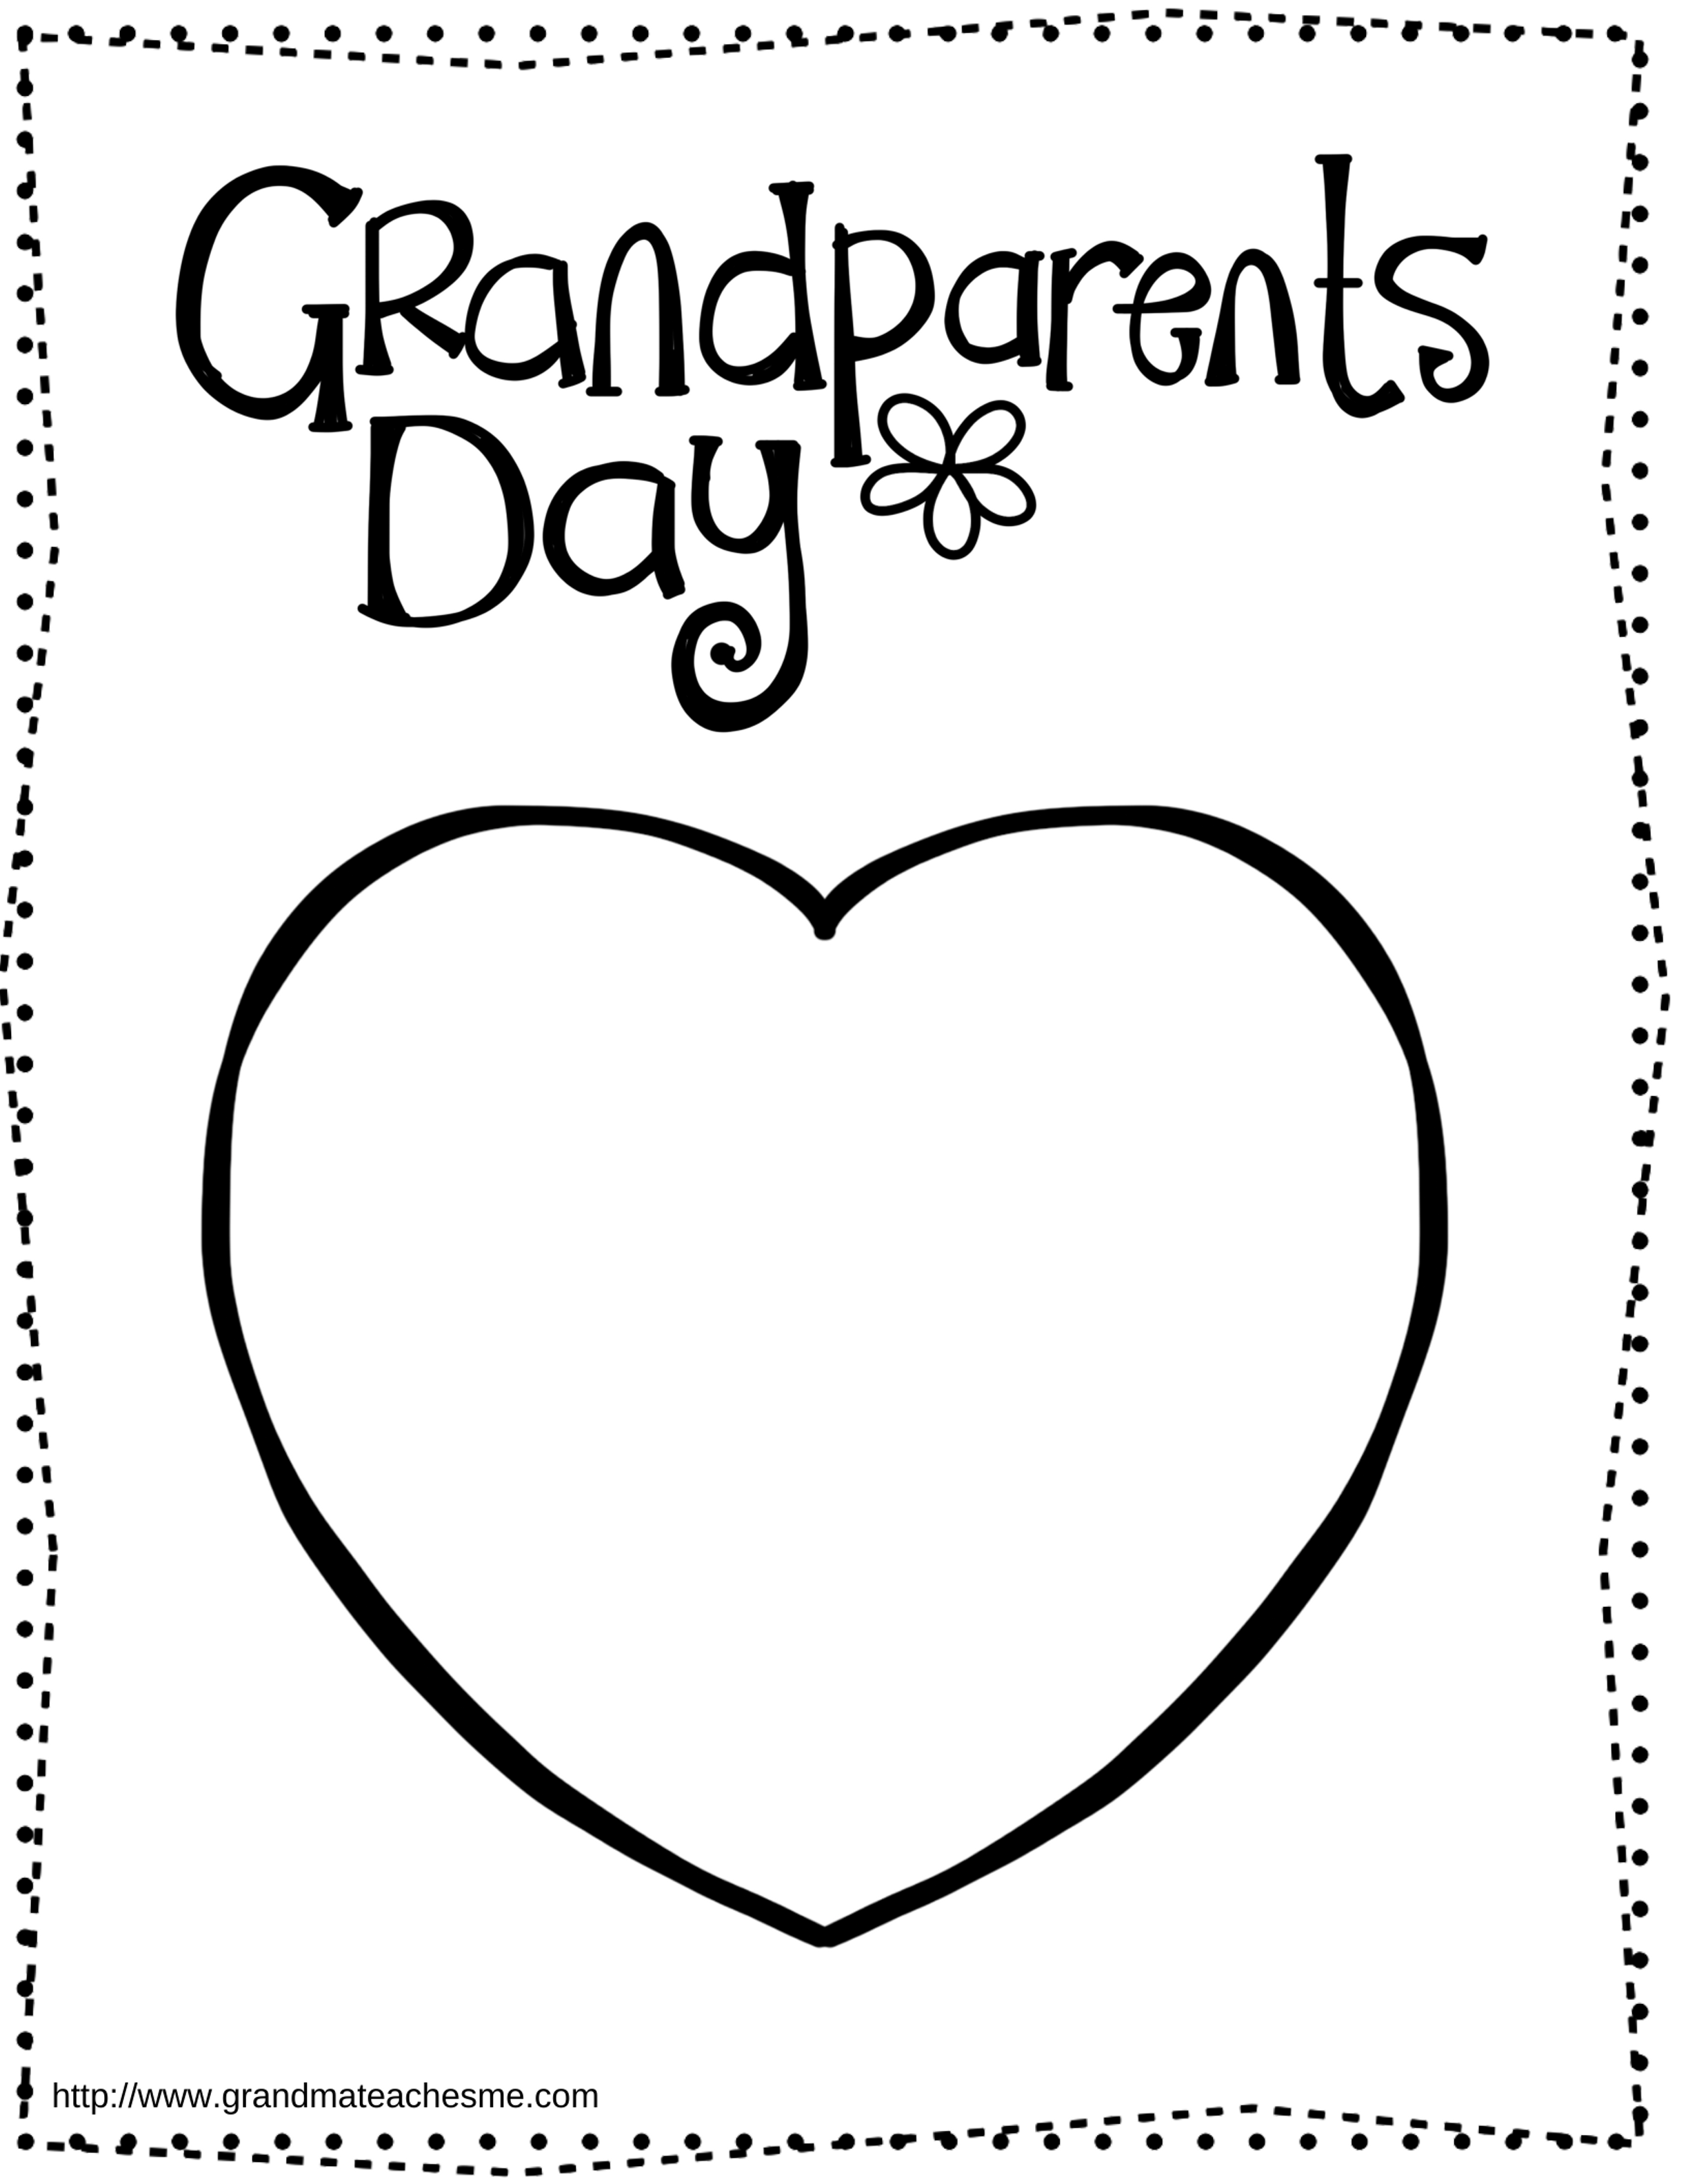 Grandparents Day Printable Gifts And Fun Activities Grandparents Day Heart Coloring Pages Printable Valentines Coloring Pages